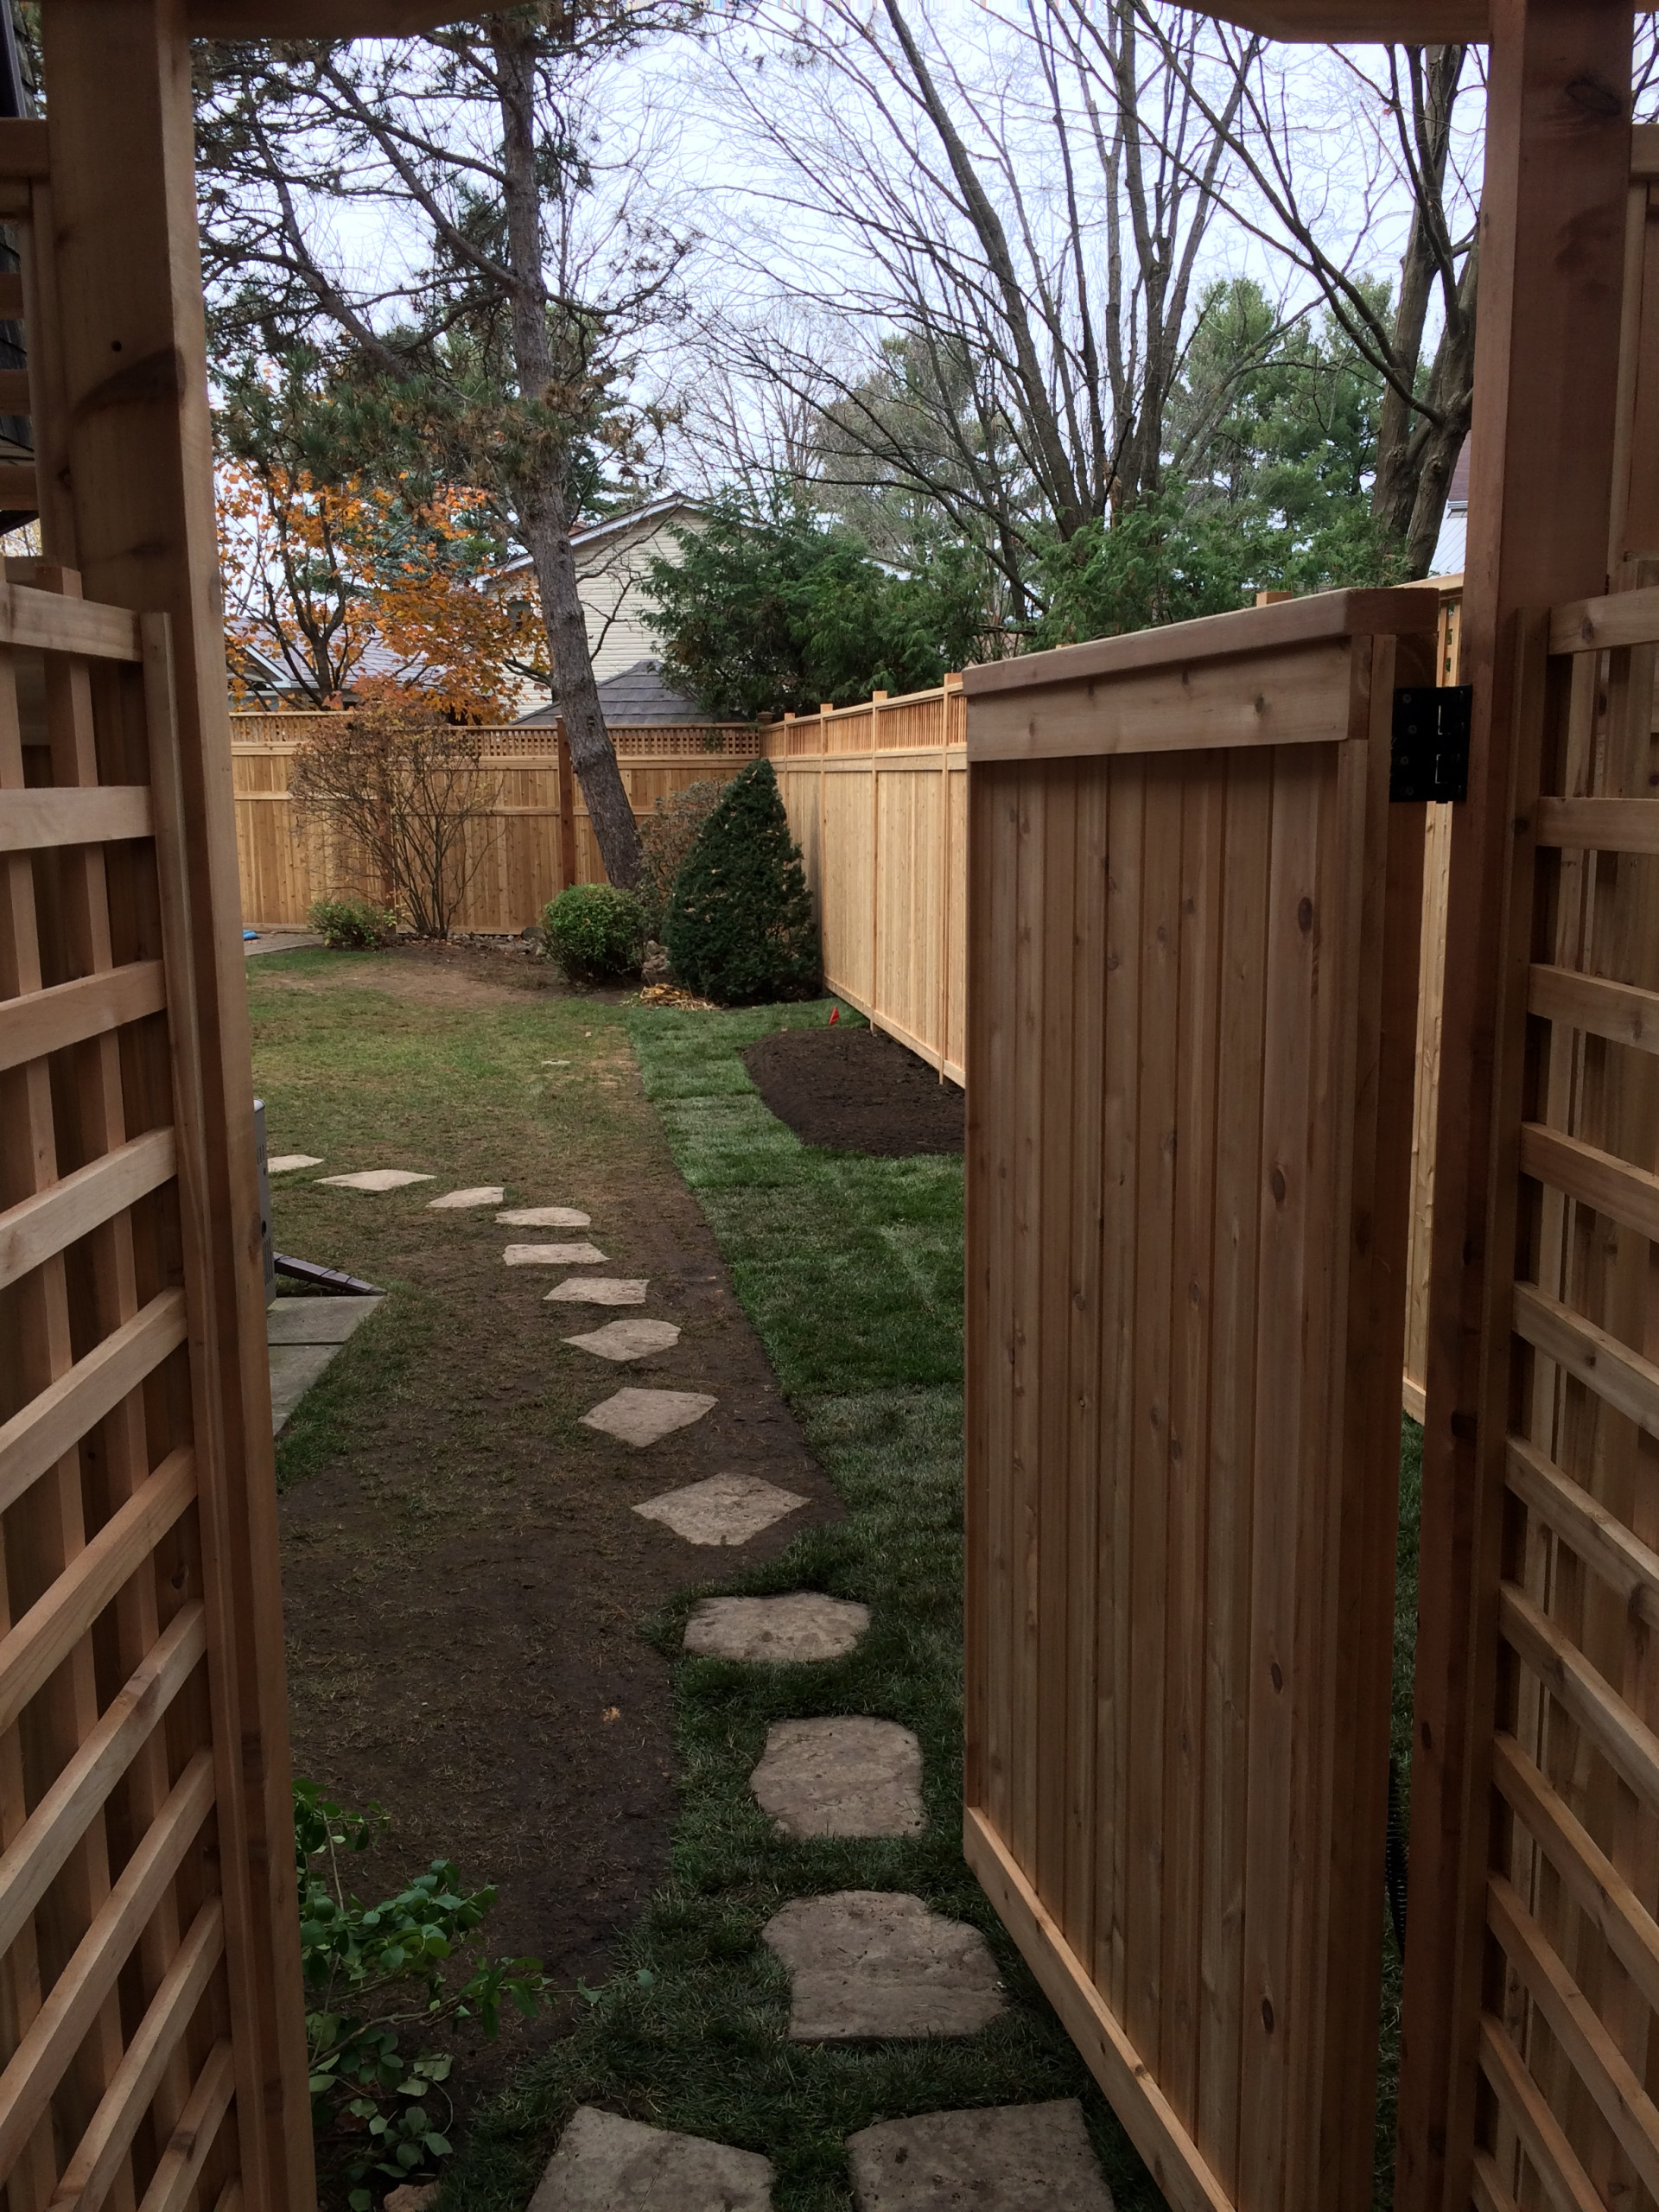 toungue & groove Cedar fence with 6 x 6 posts & 4 x 4 posts